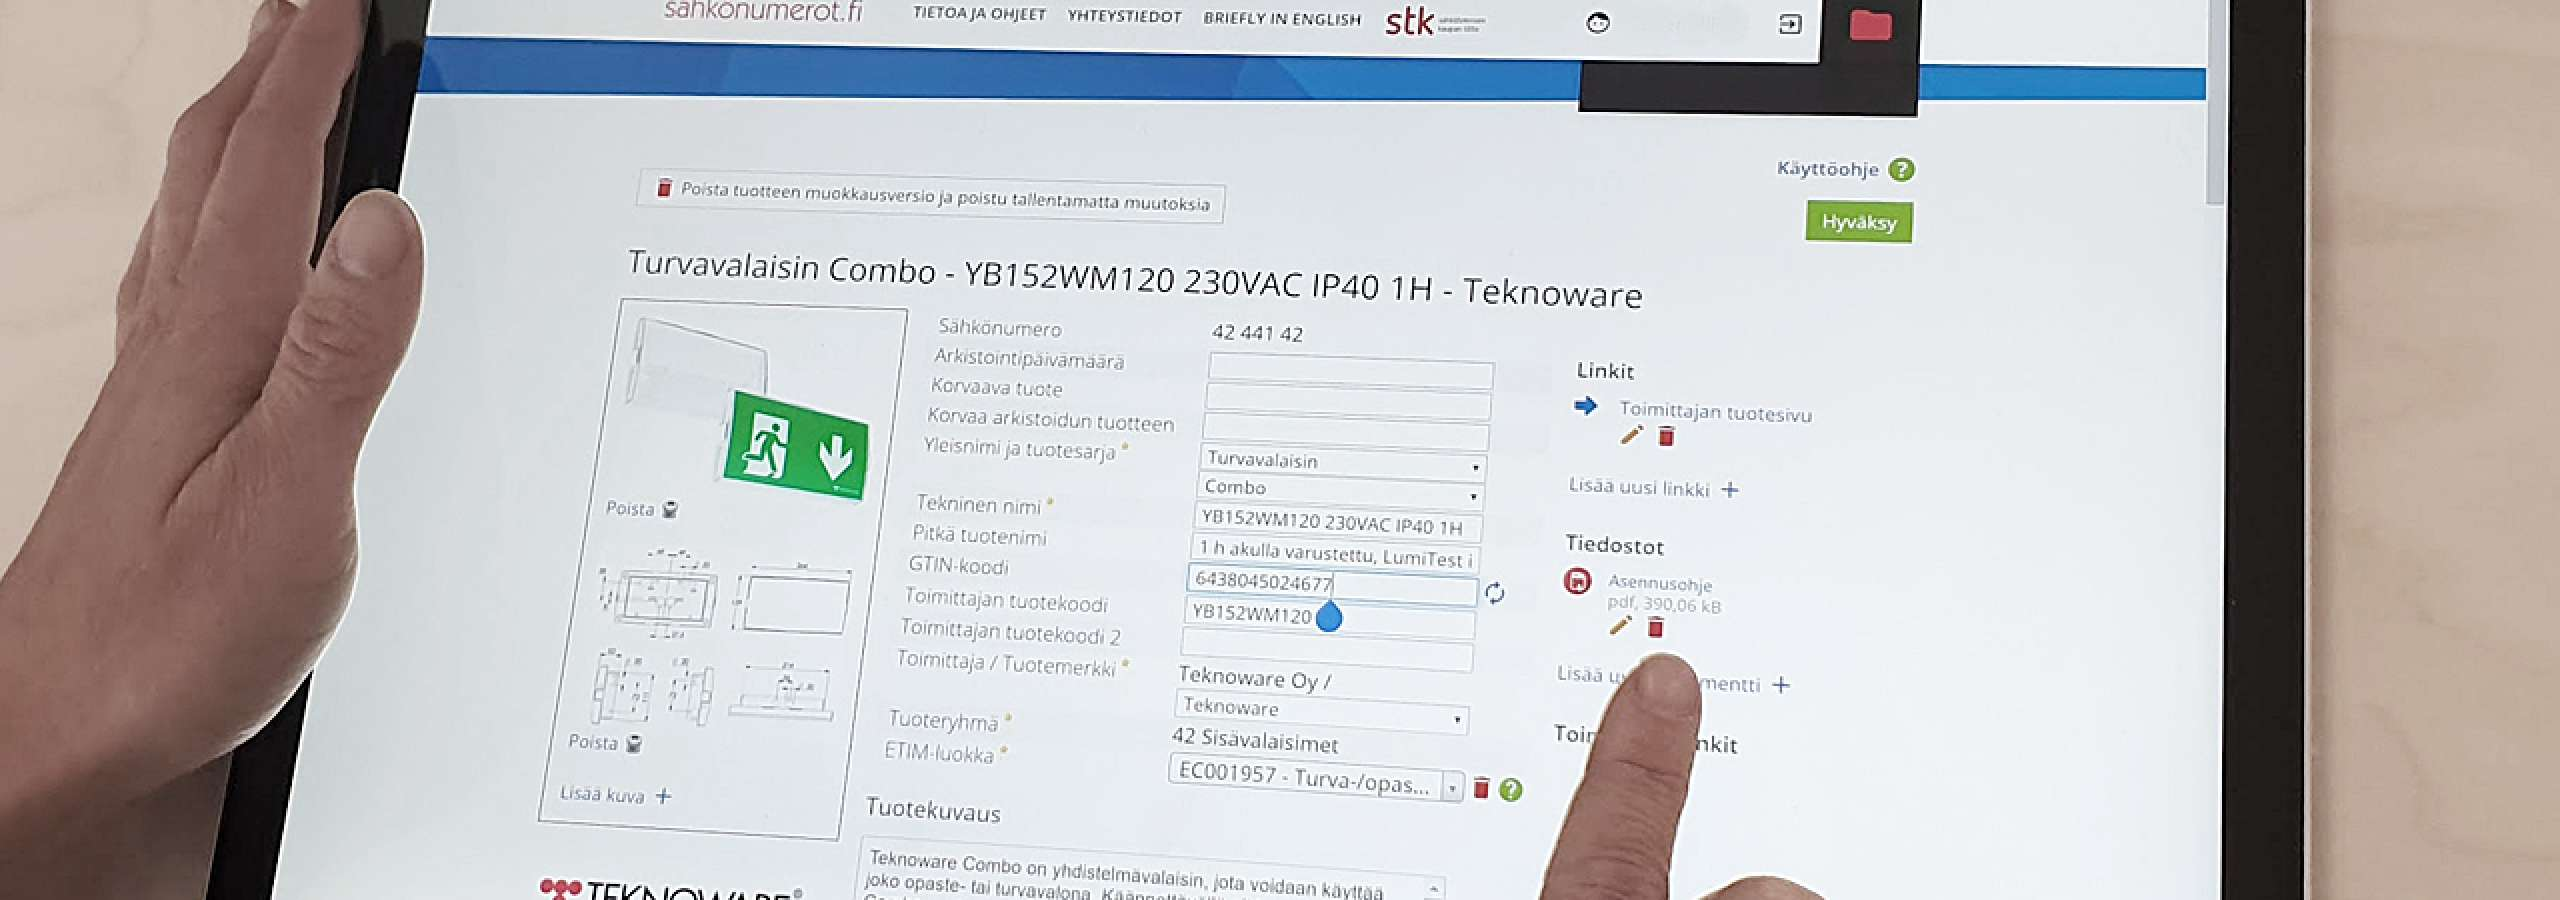 TEKNOWARE IS THE BEST UPDATER OF PRODUCT DATA AMONG EMERGENCY LIGHTING COMPANIES